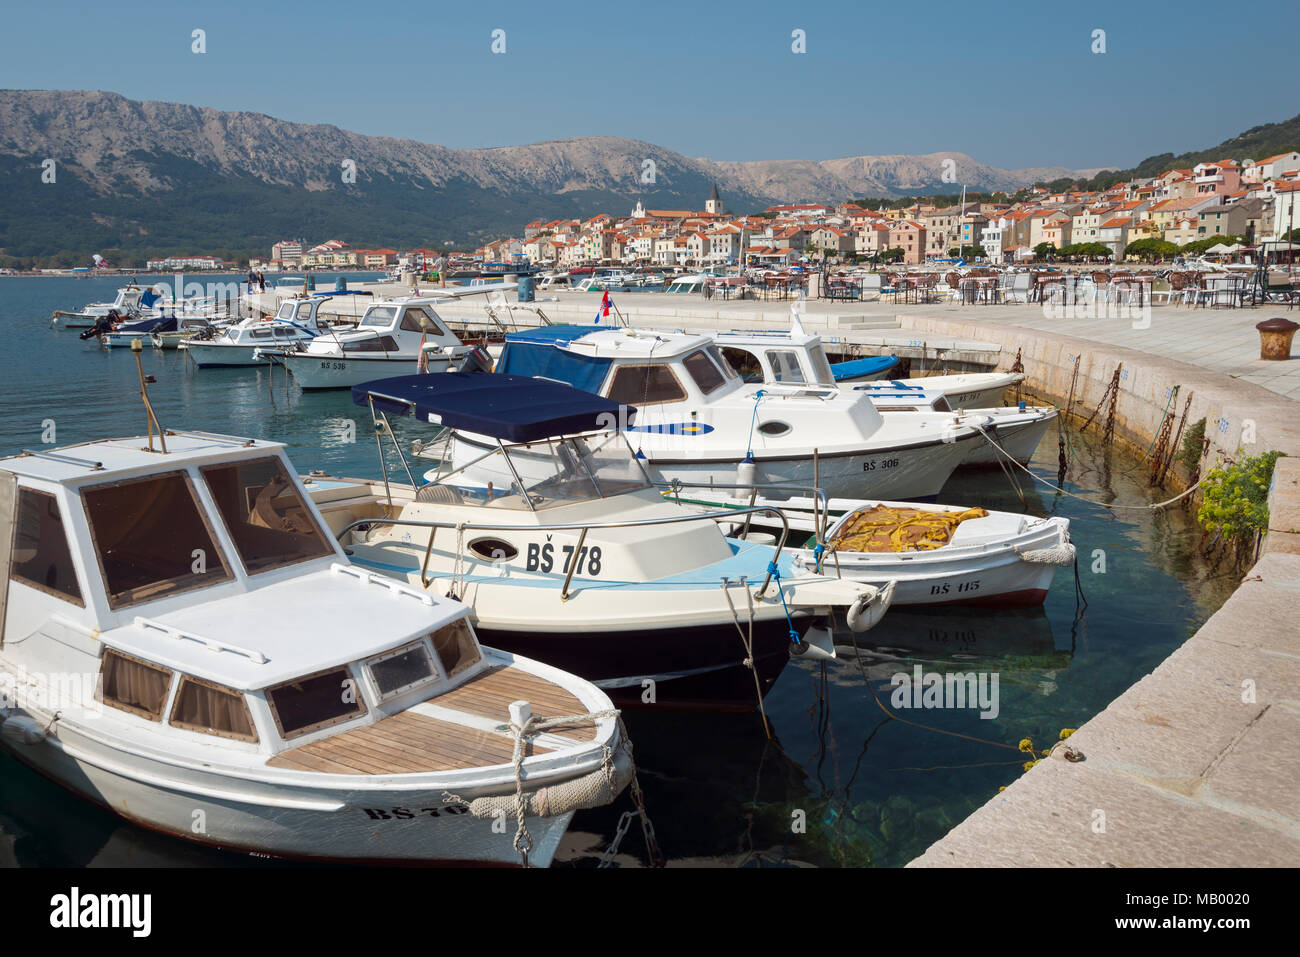 Motor boats in the harbour, Baska, island Krk, Kvarner Gulf Bay, Croatia - Stock Image